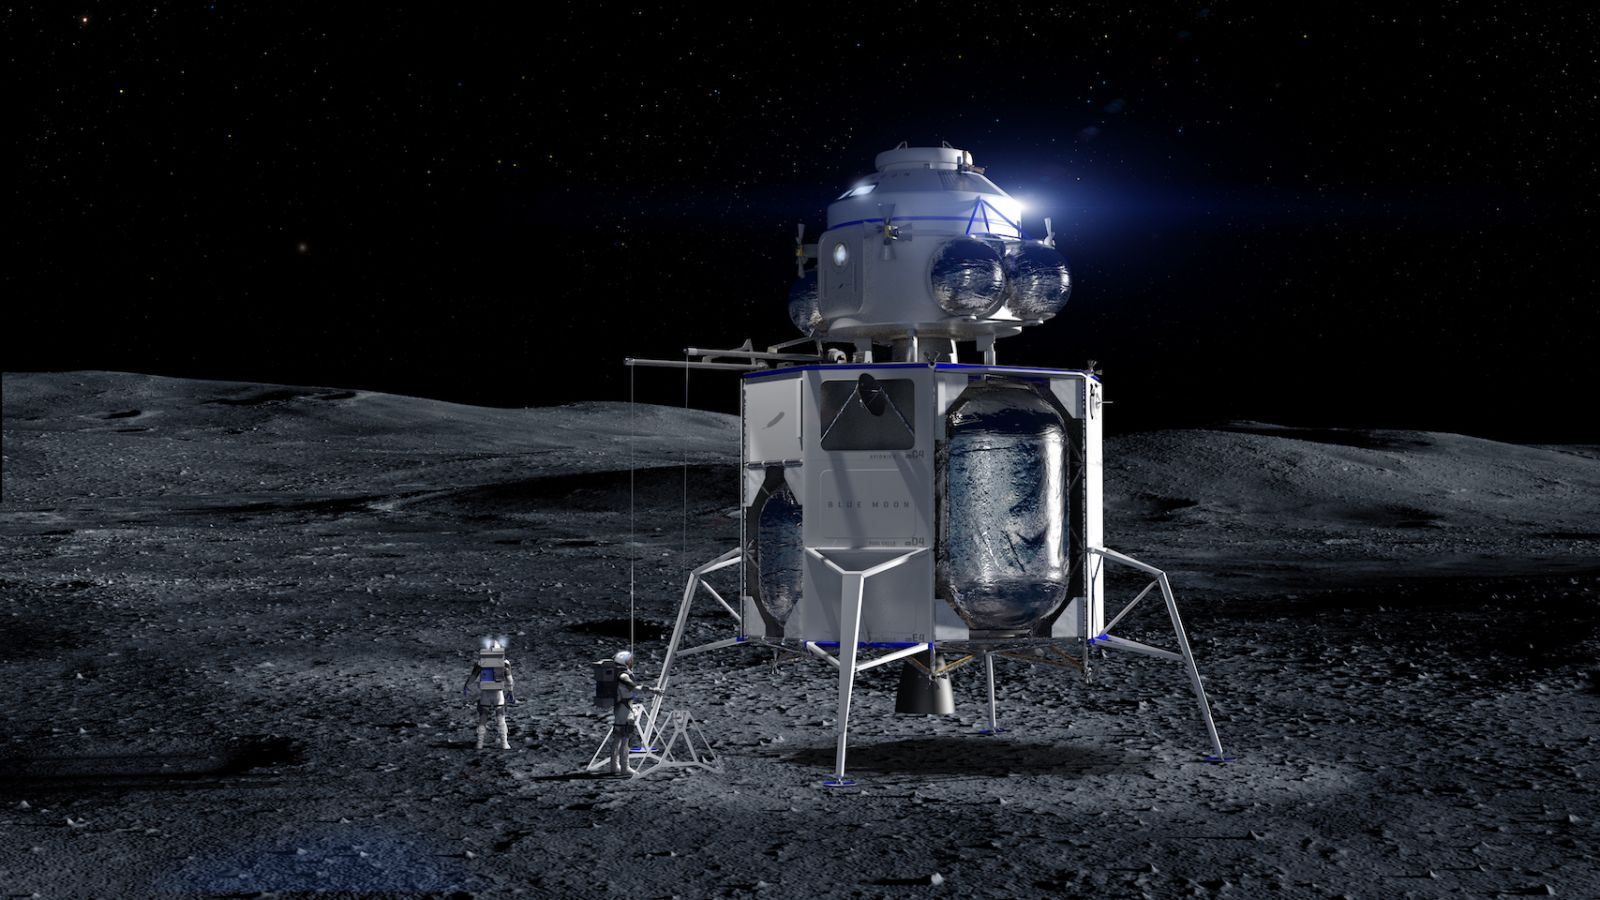 An illustration of a Blue Origin lander with an ascent vehicle payload. This configuration could be used to send NASA astronauts to the surface of the Moon by 2024. A crewed landing would occur during the Artemis 3 mission. Image Credit: Blue Origin